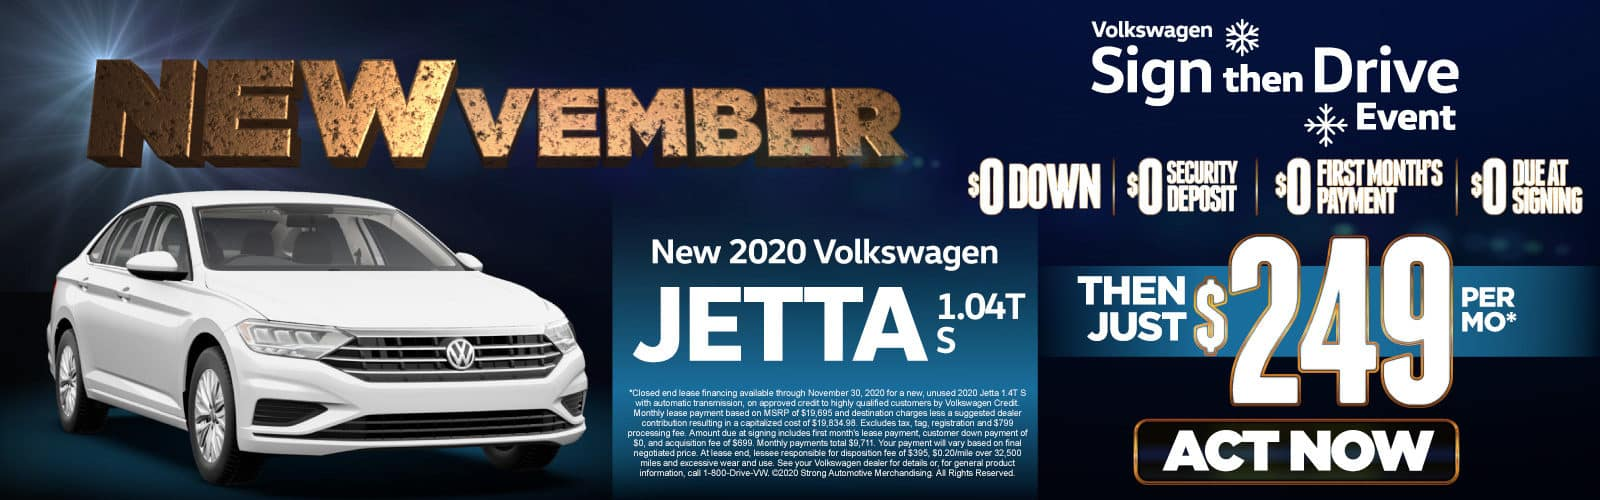 New 2020 VW Jetta - Only $249 a month - Act Now